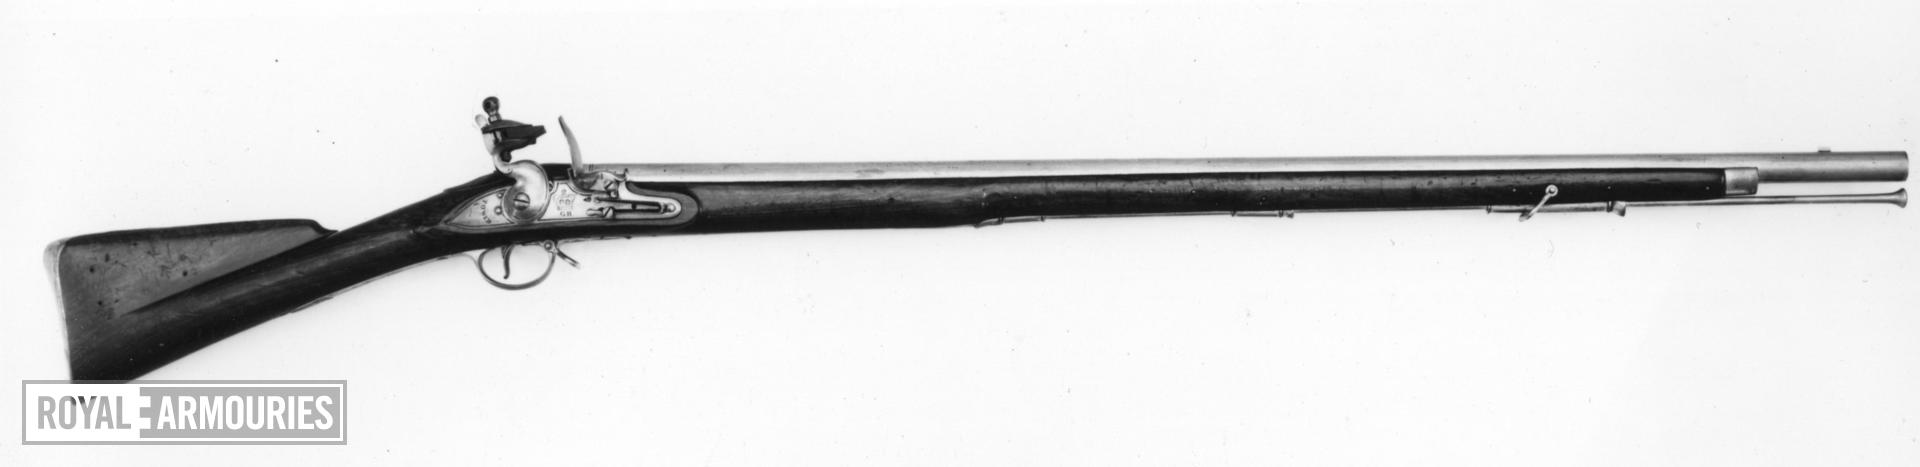 Flintlock muzzle-loading military musket - Model 1793 India Pattern (Type I) Early model